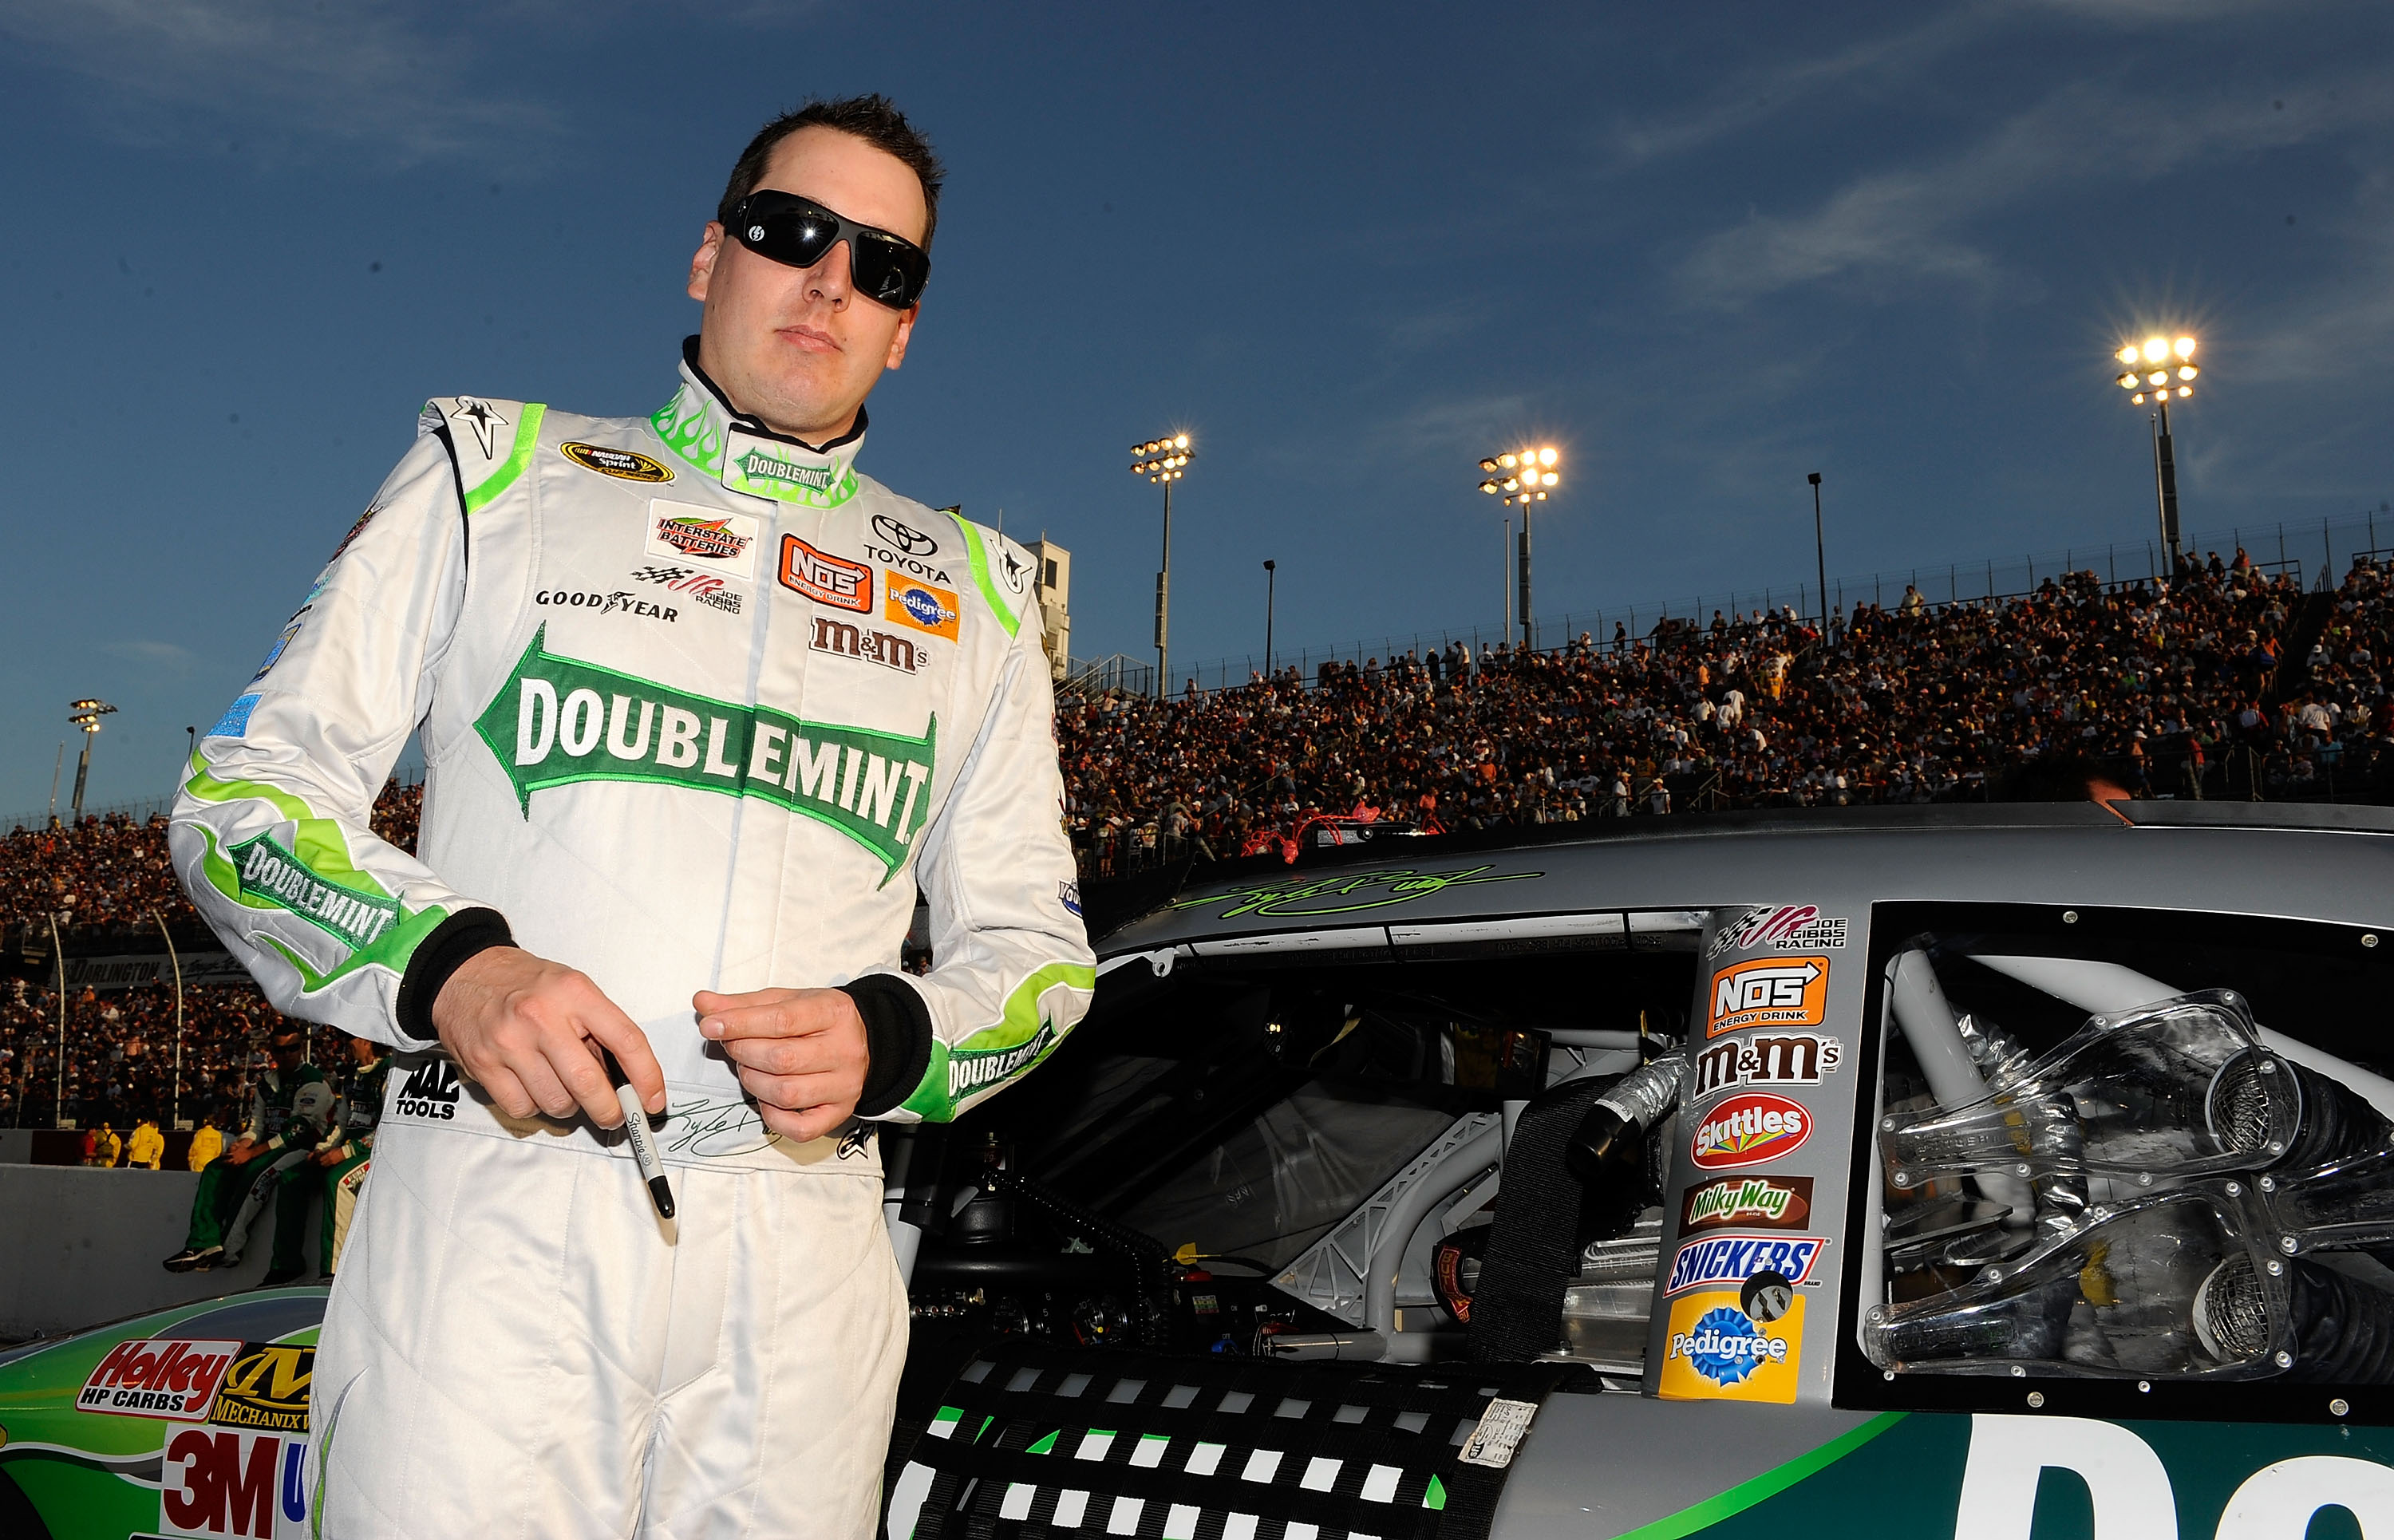 DARLINGTON, SC - MAY 08:  Kyle Busch, driver of the #18 Doublemint Toyota, stands on the grid prior to the start of the NASCAR Sprint Cup series SHOWTIME Southern 500 at Darlington Raceway on May 8, 2010 in Darlington, South Carolina.  (Photo by Rusty Jar